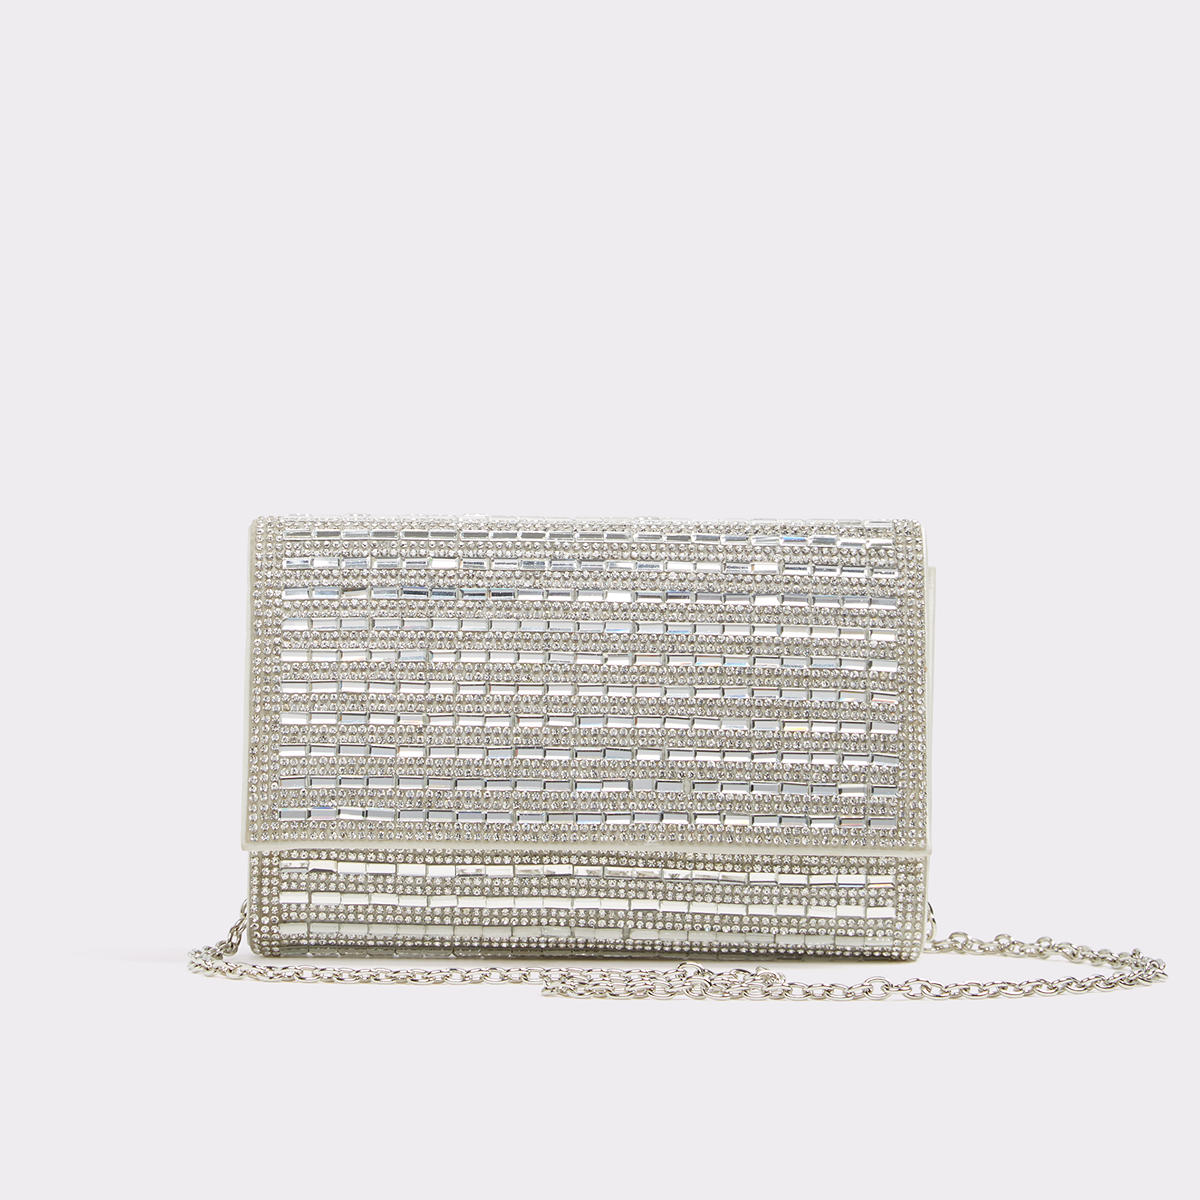 Larilan Silver Women's Clutches & evening | ALDO US at Aldo Shoes in Victor, NY | Tuggl